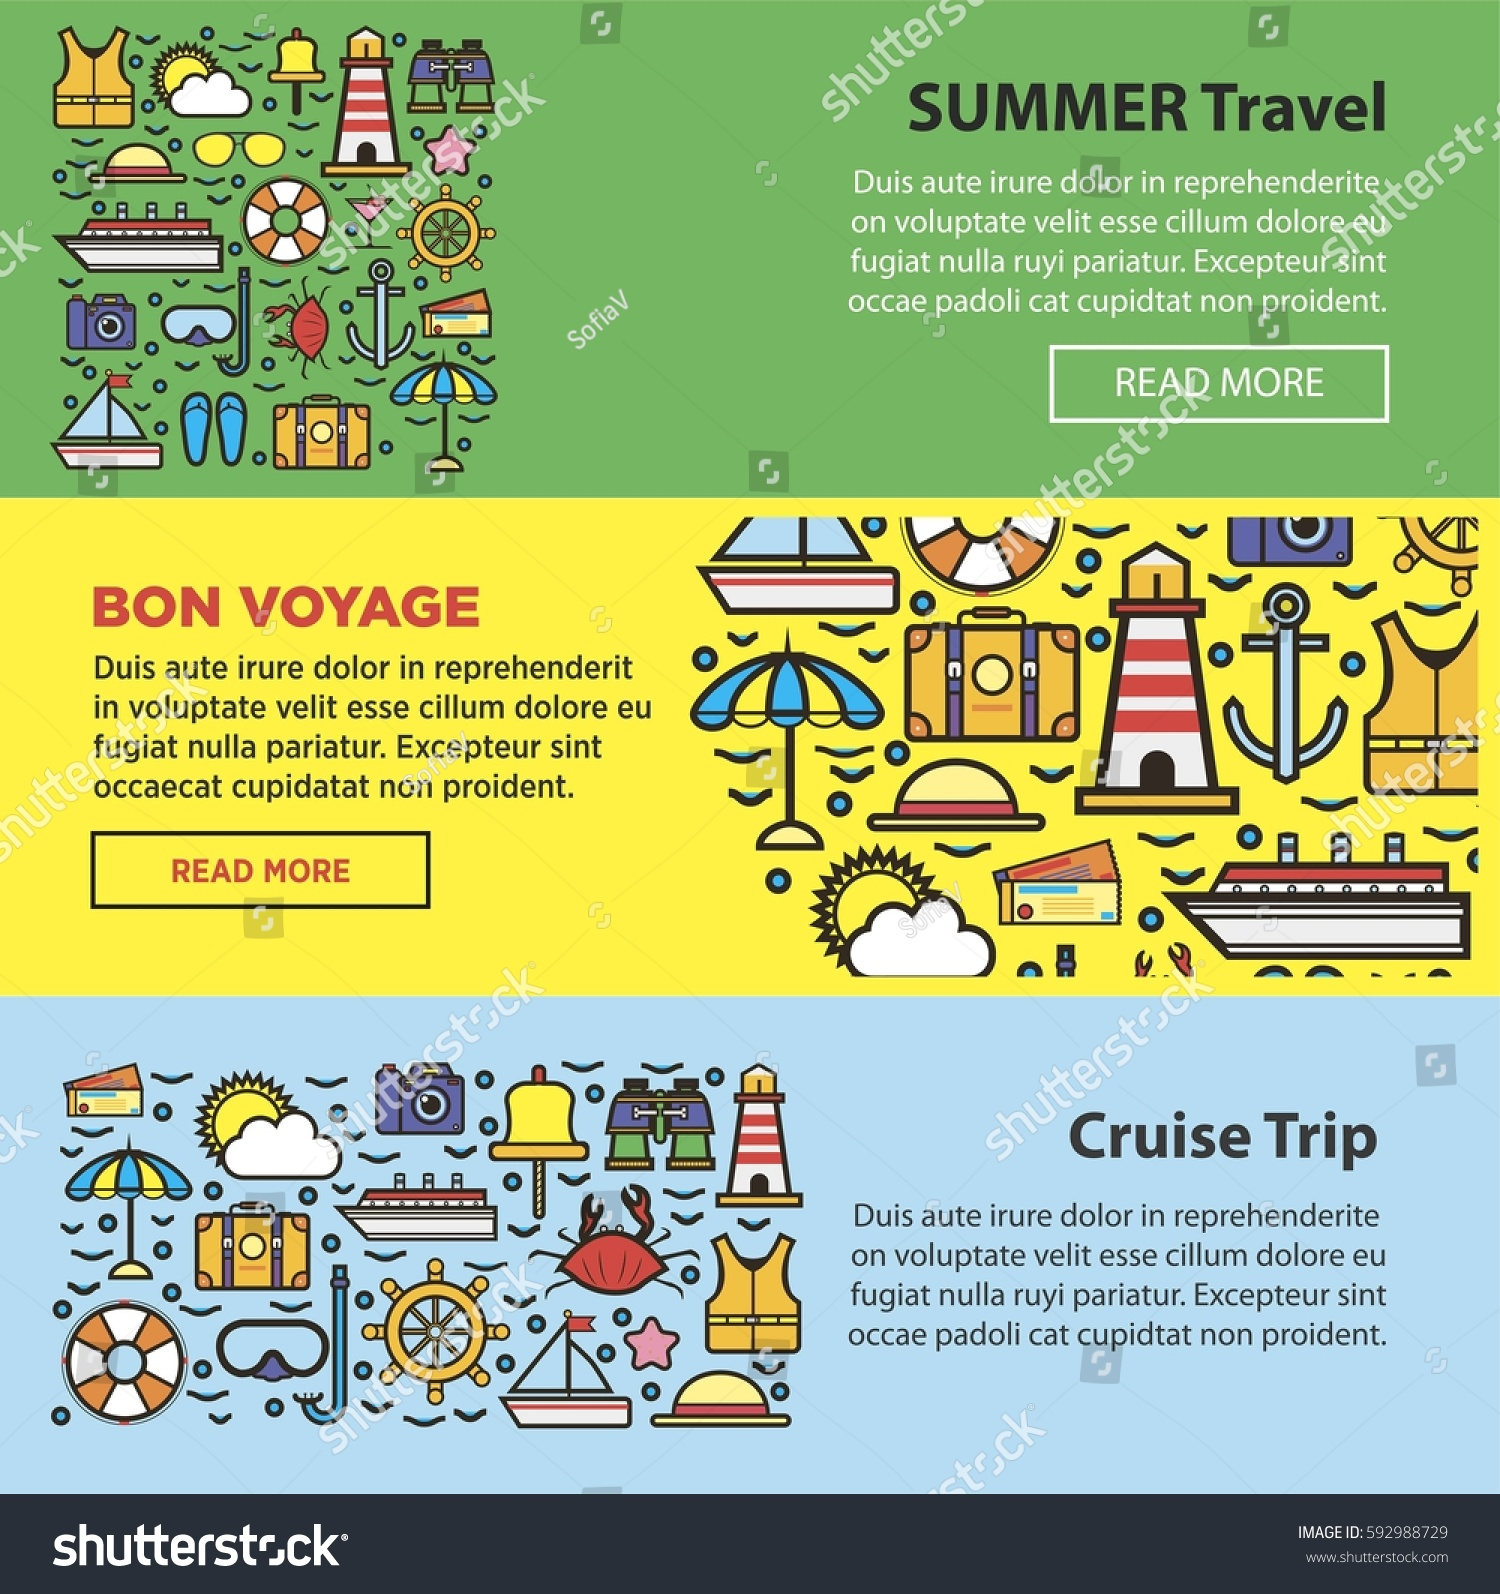 Summer Travel Sea Cruise And Holiday Beach Vacations Agency Or Company Web Banners Templates Set